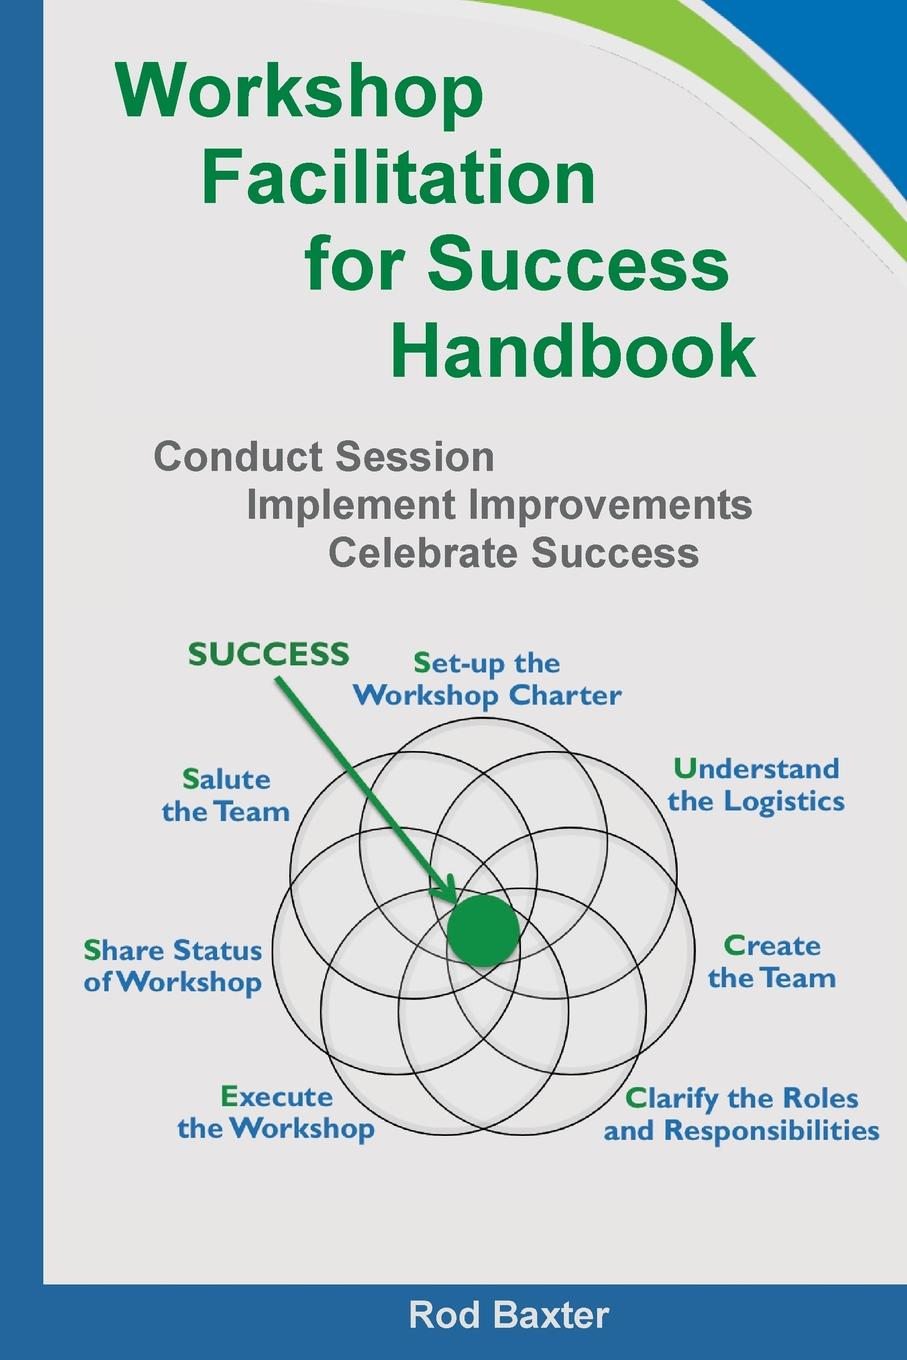 Rod Baxter Workshop Facilitation for Success Handbook. Conduct Session - Implement Improvements - Celebrate Success the step of the step of the piezoelectric generator is to generate electricity